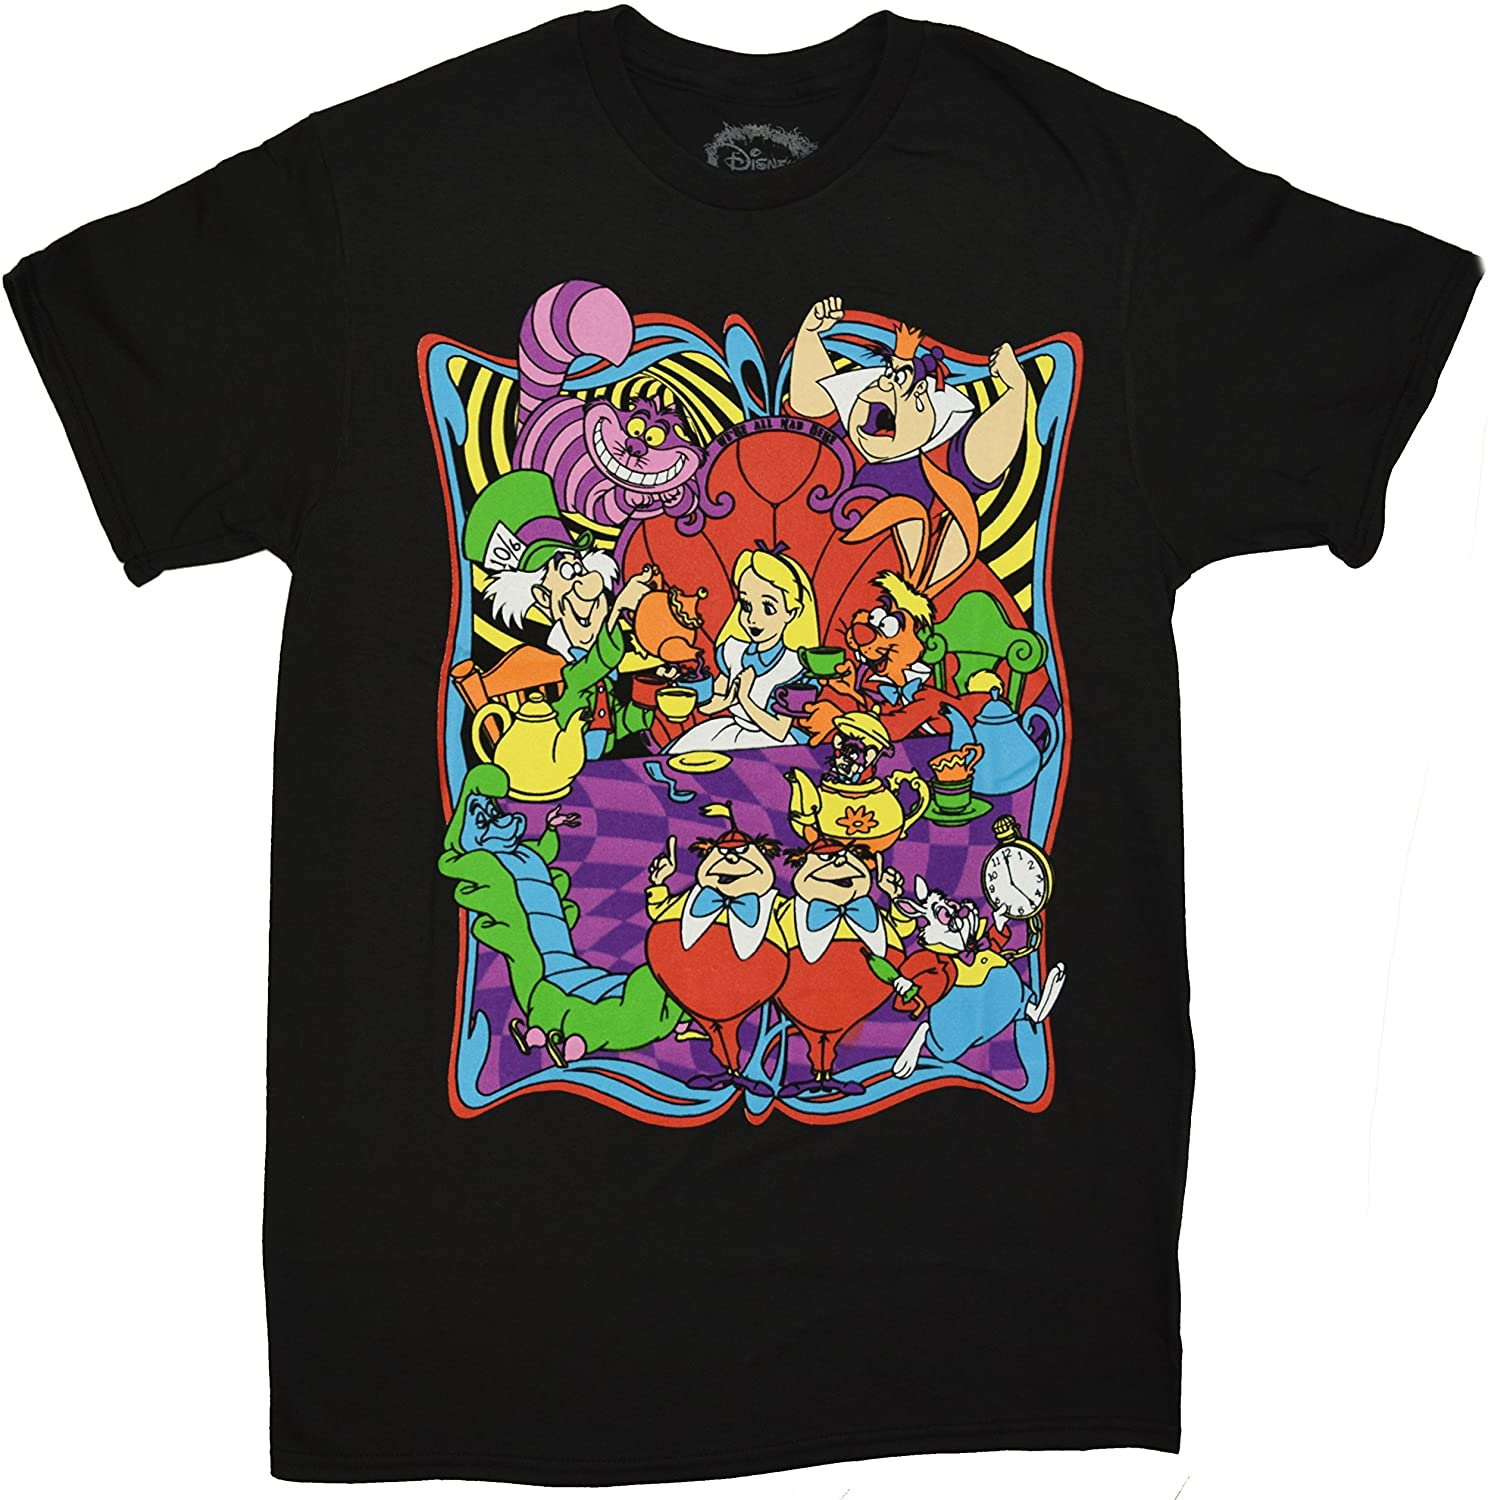 Disney Alice in Wonderland Mostly Mad Tea Party T-Shirt